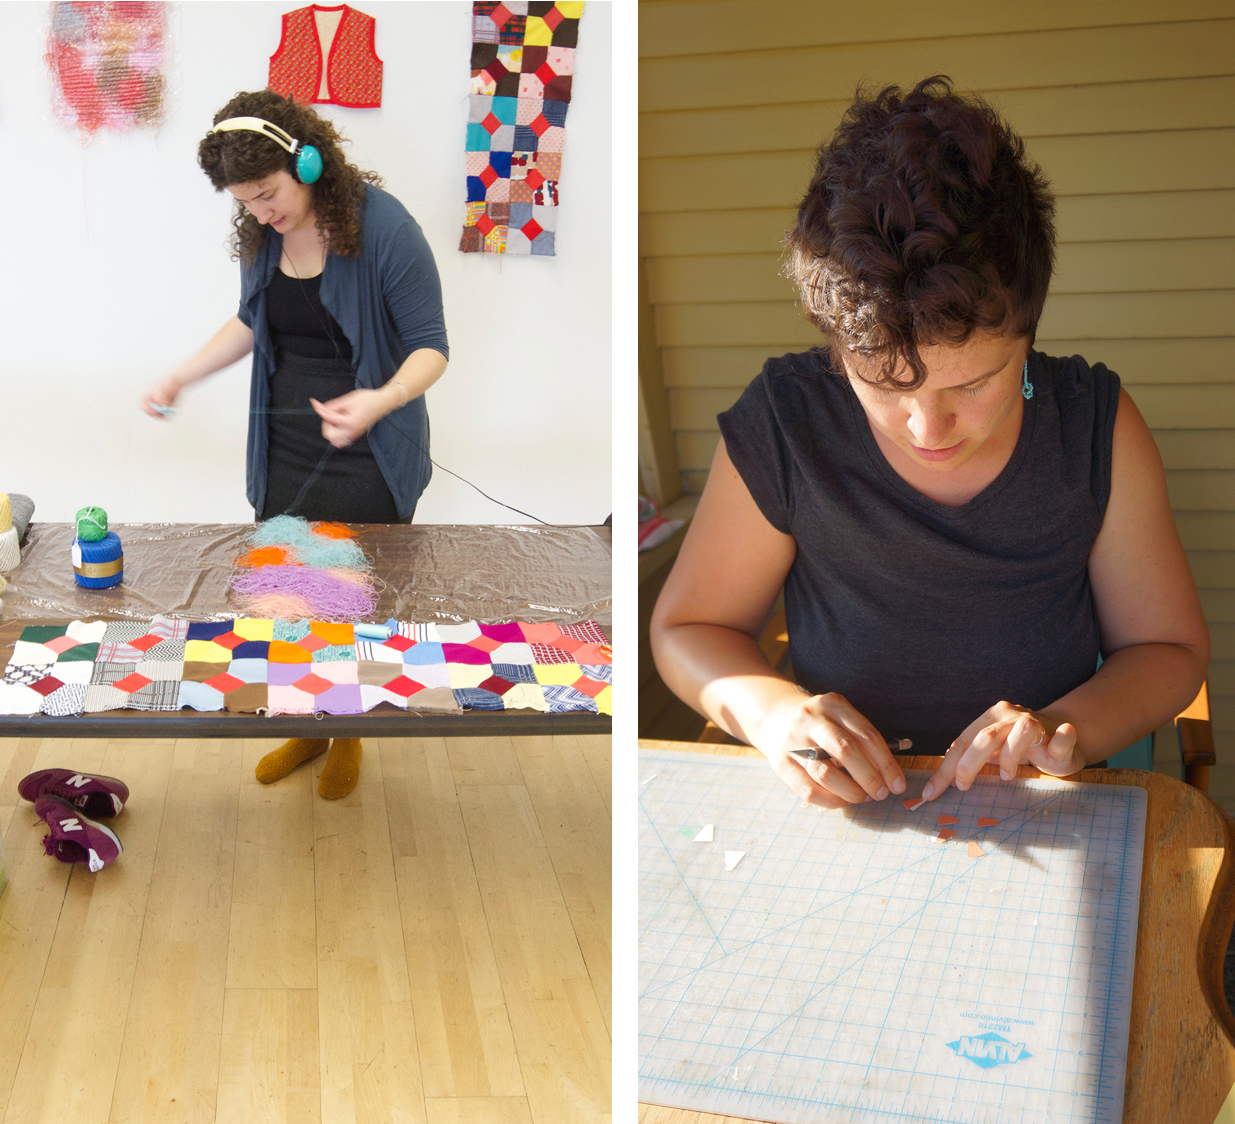 Artists Catherine Reinhart, left, and Allison Metzger in their studios.